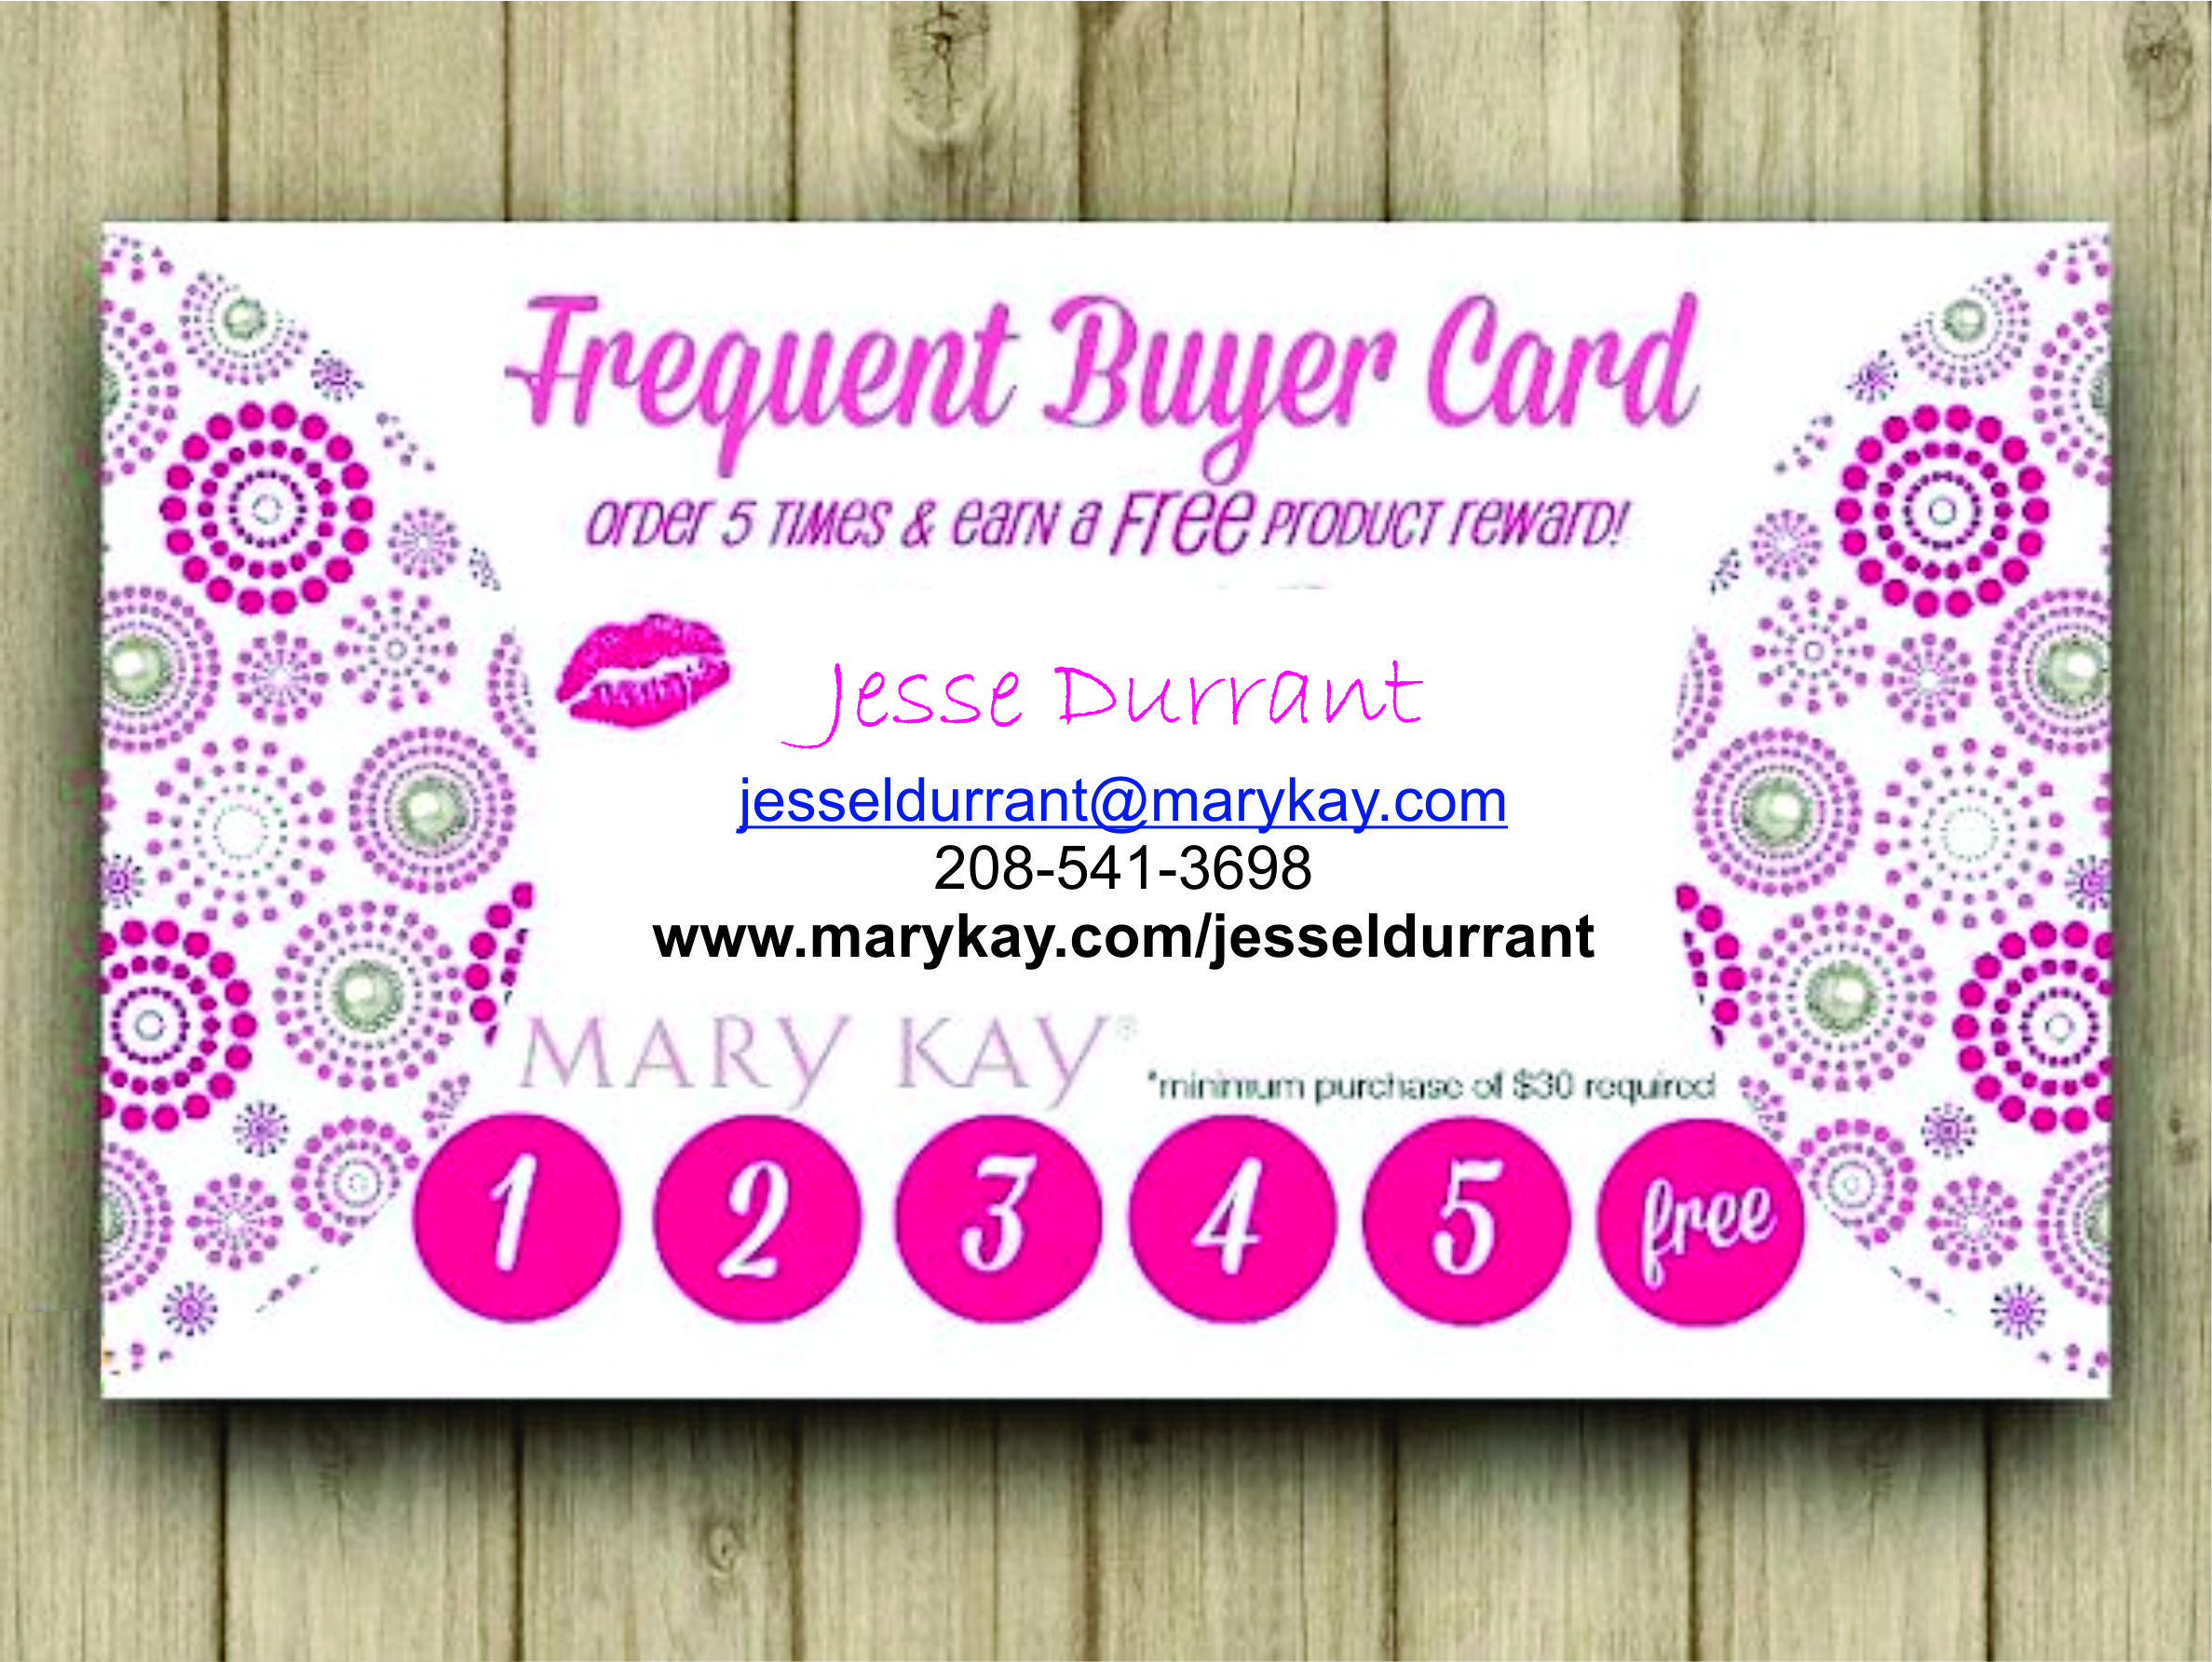 Frequent Buyer Card!!! Earn free product when you register to be a ...